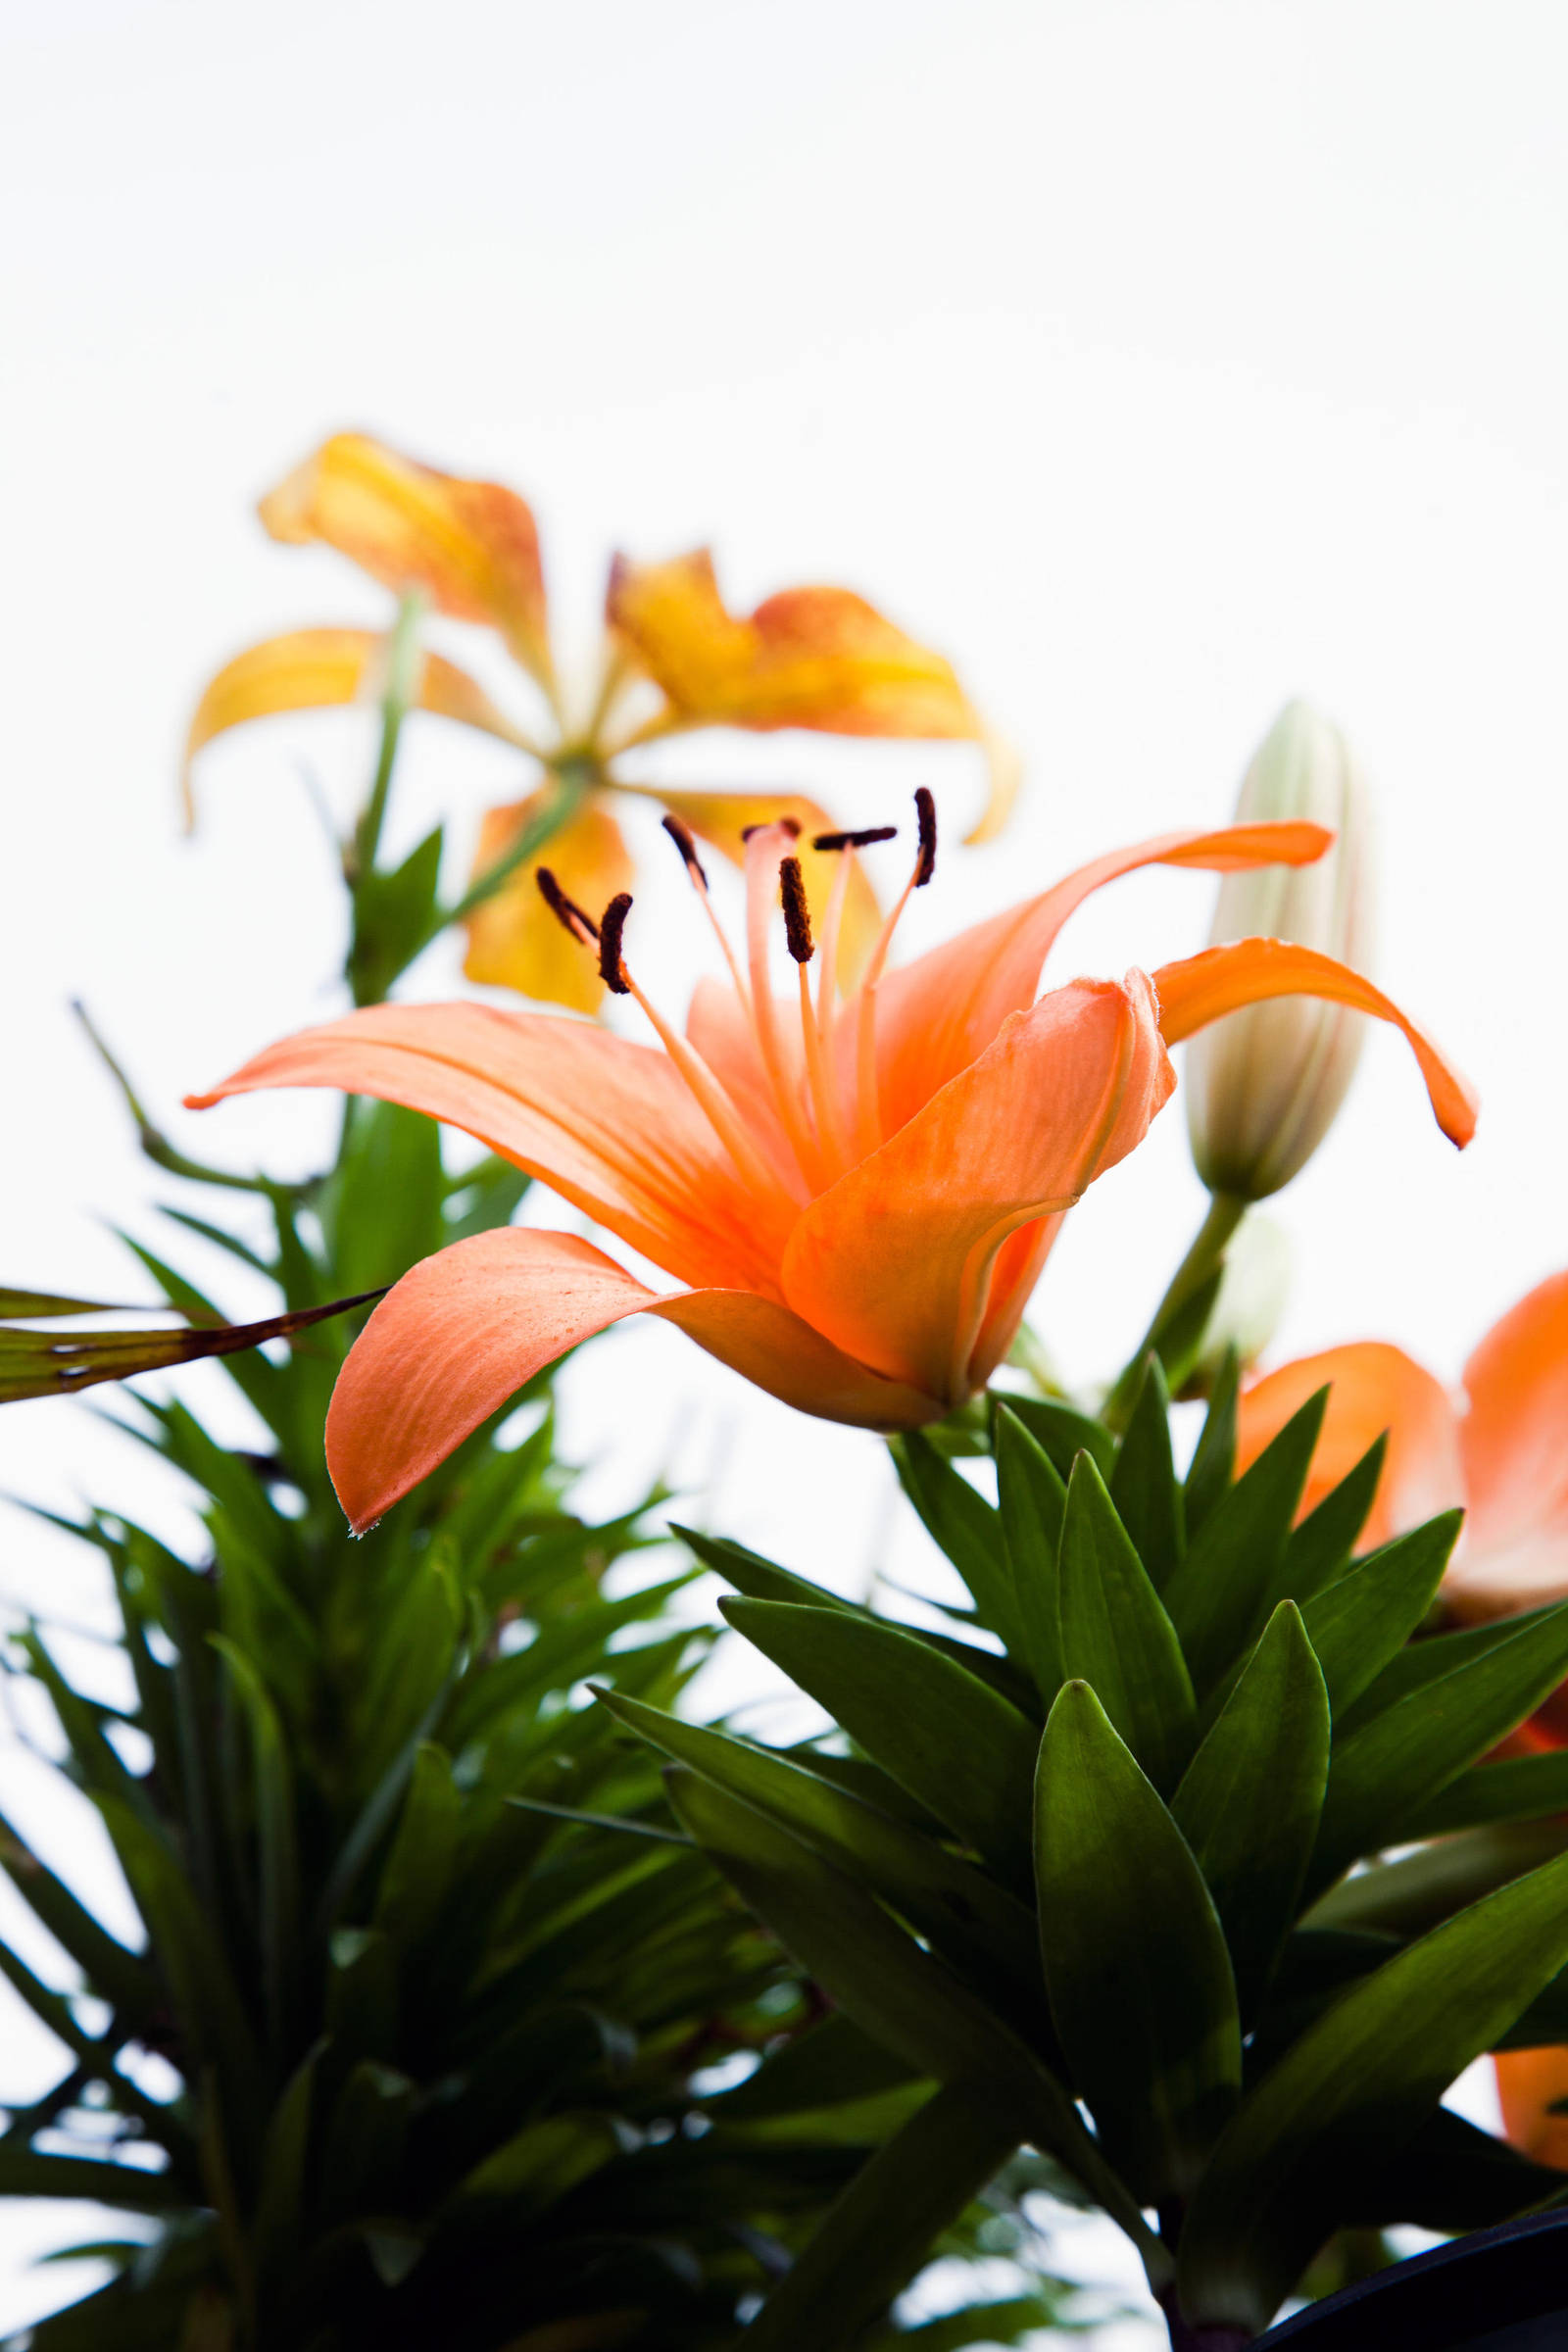 Orange Hybrid Lily on a Dreary Day by richardxthripp